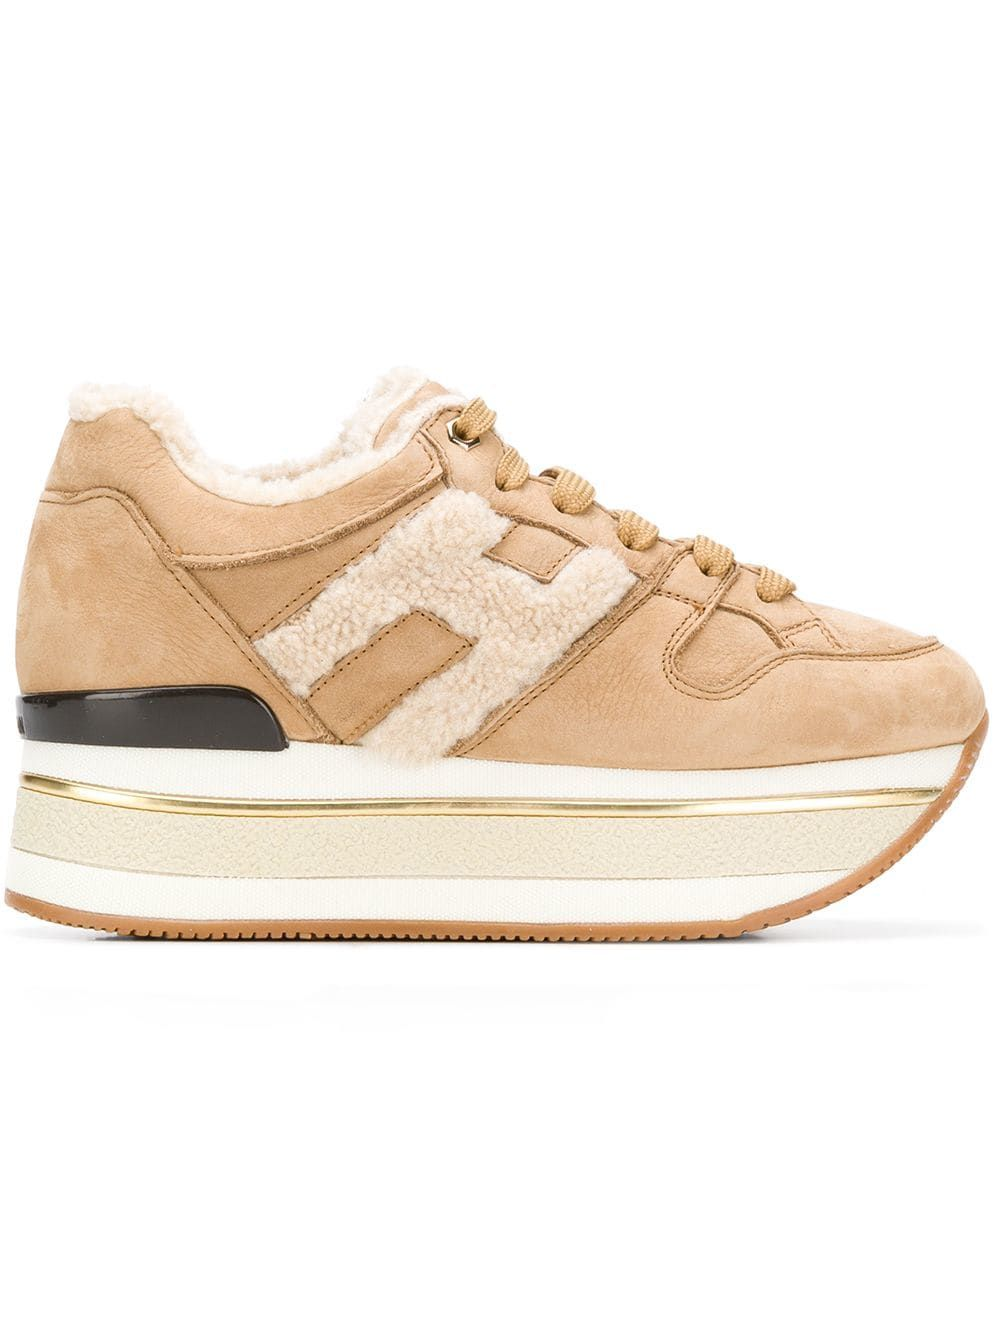 HOGAN HOGAN WOMEN'S BEIGE LEATHER SNEAKERS